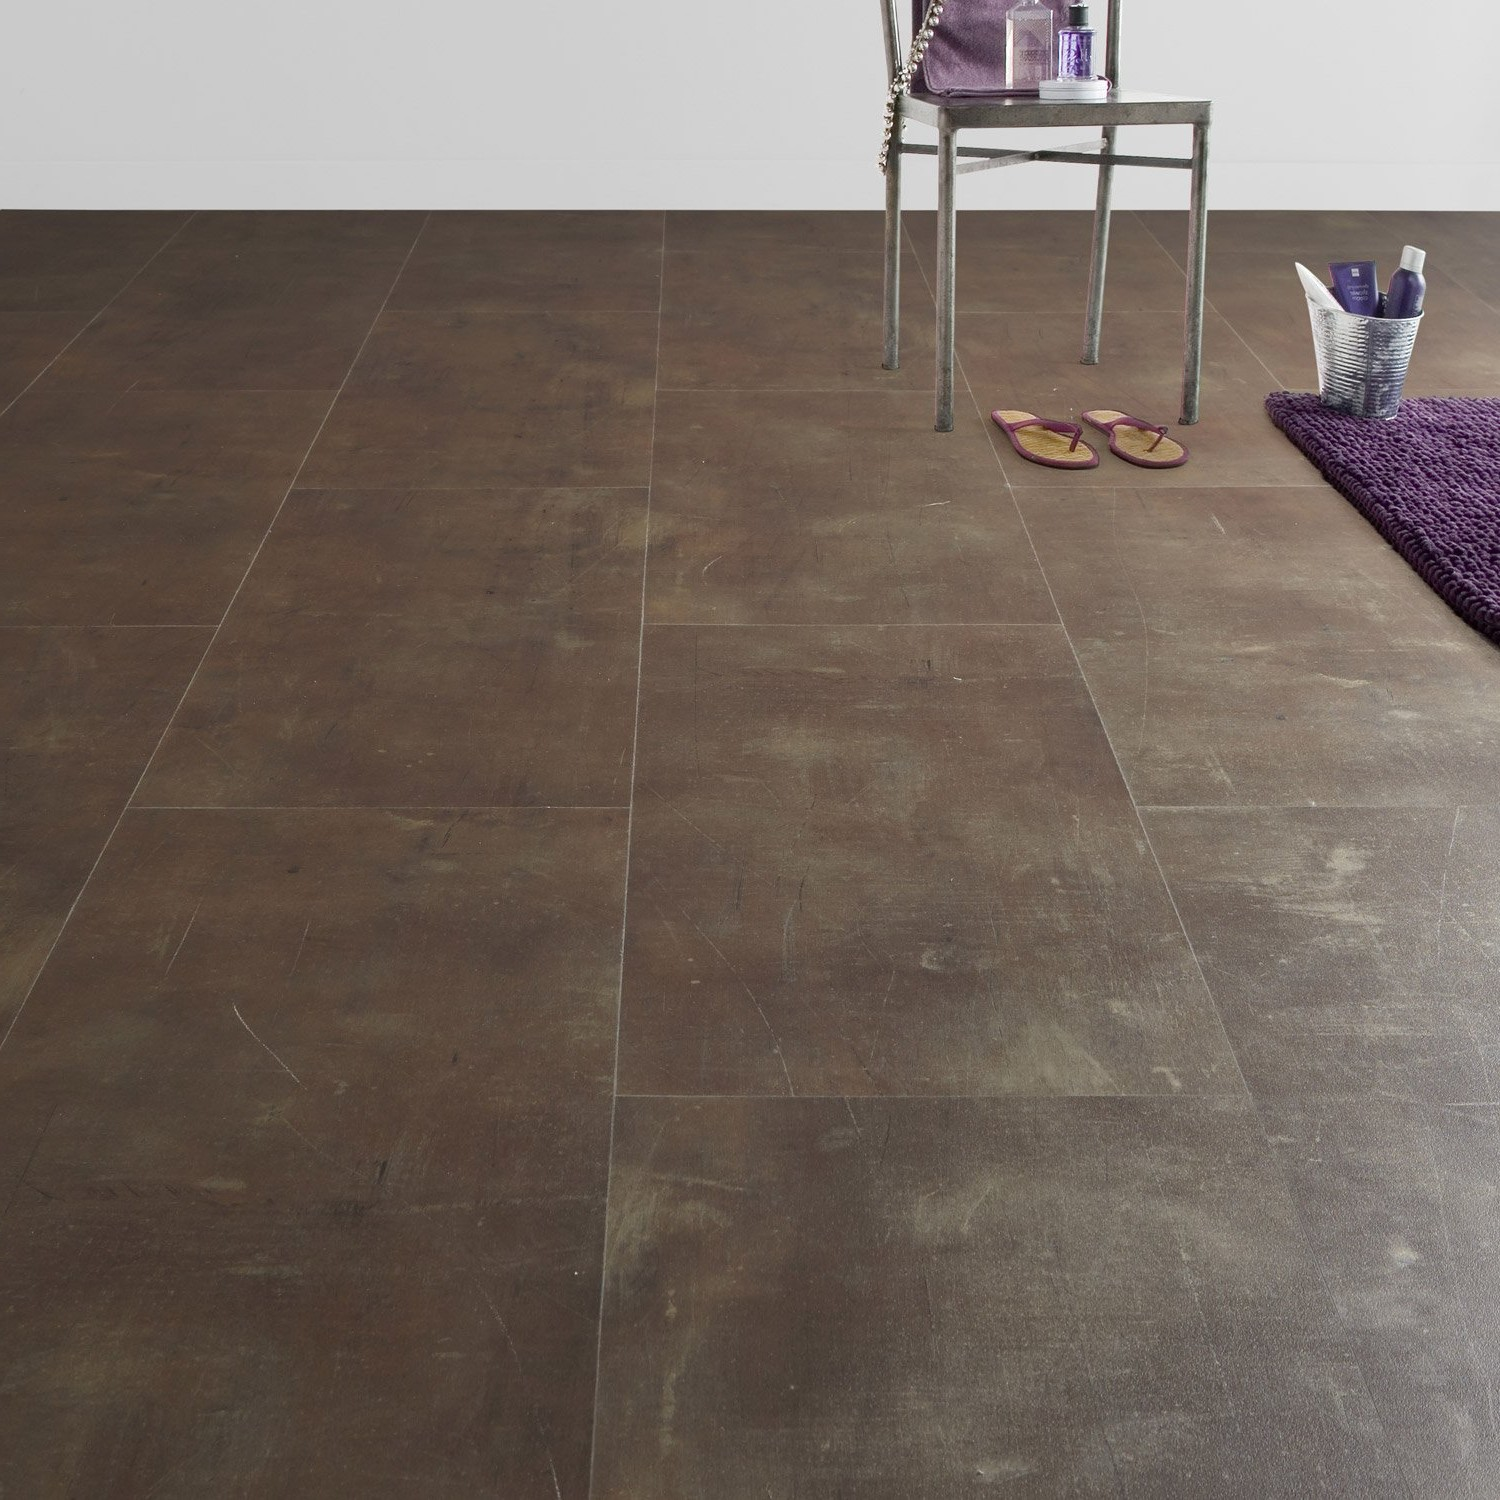 Dalle pvc clipsable sur carrelage gerflor prix gerflor for Carrelage clipsable